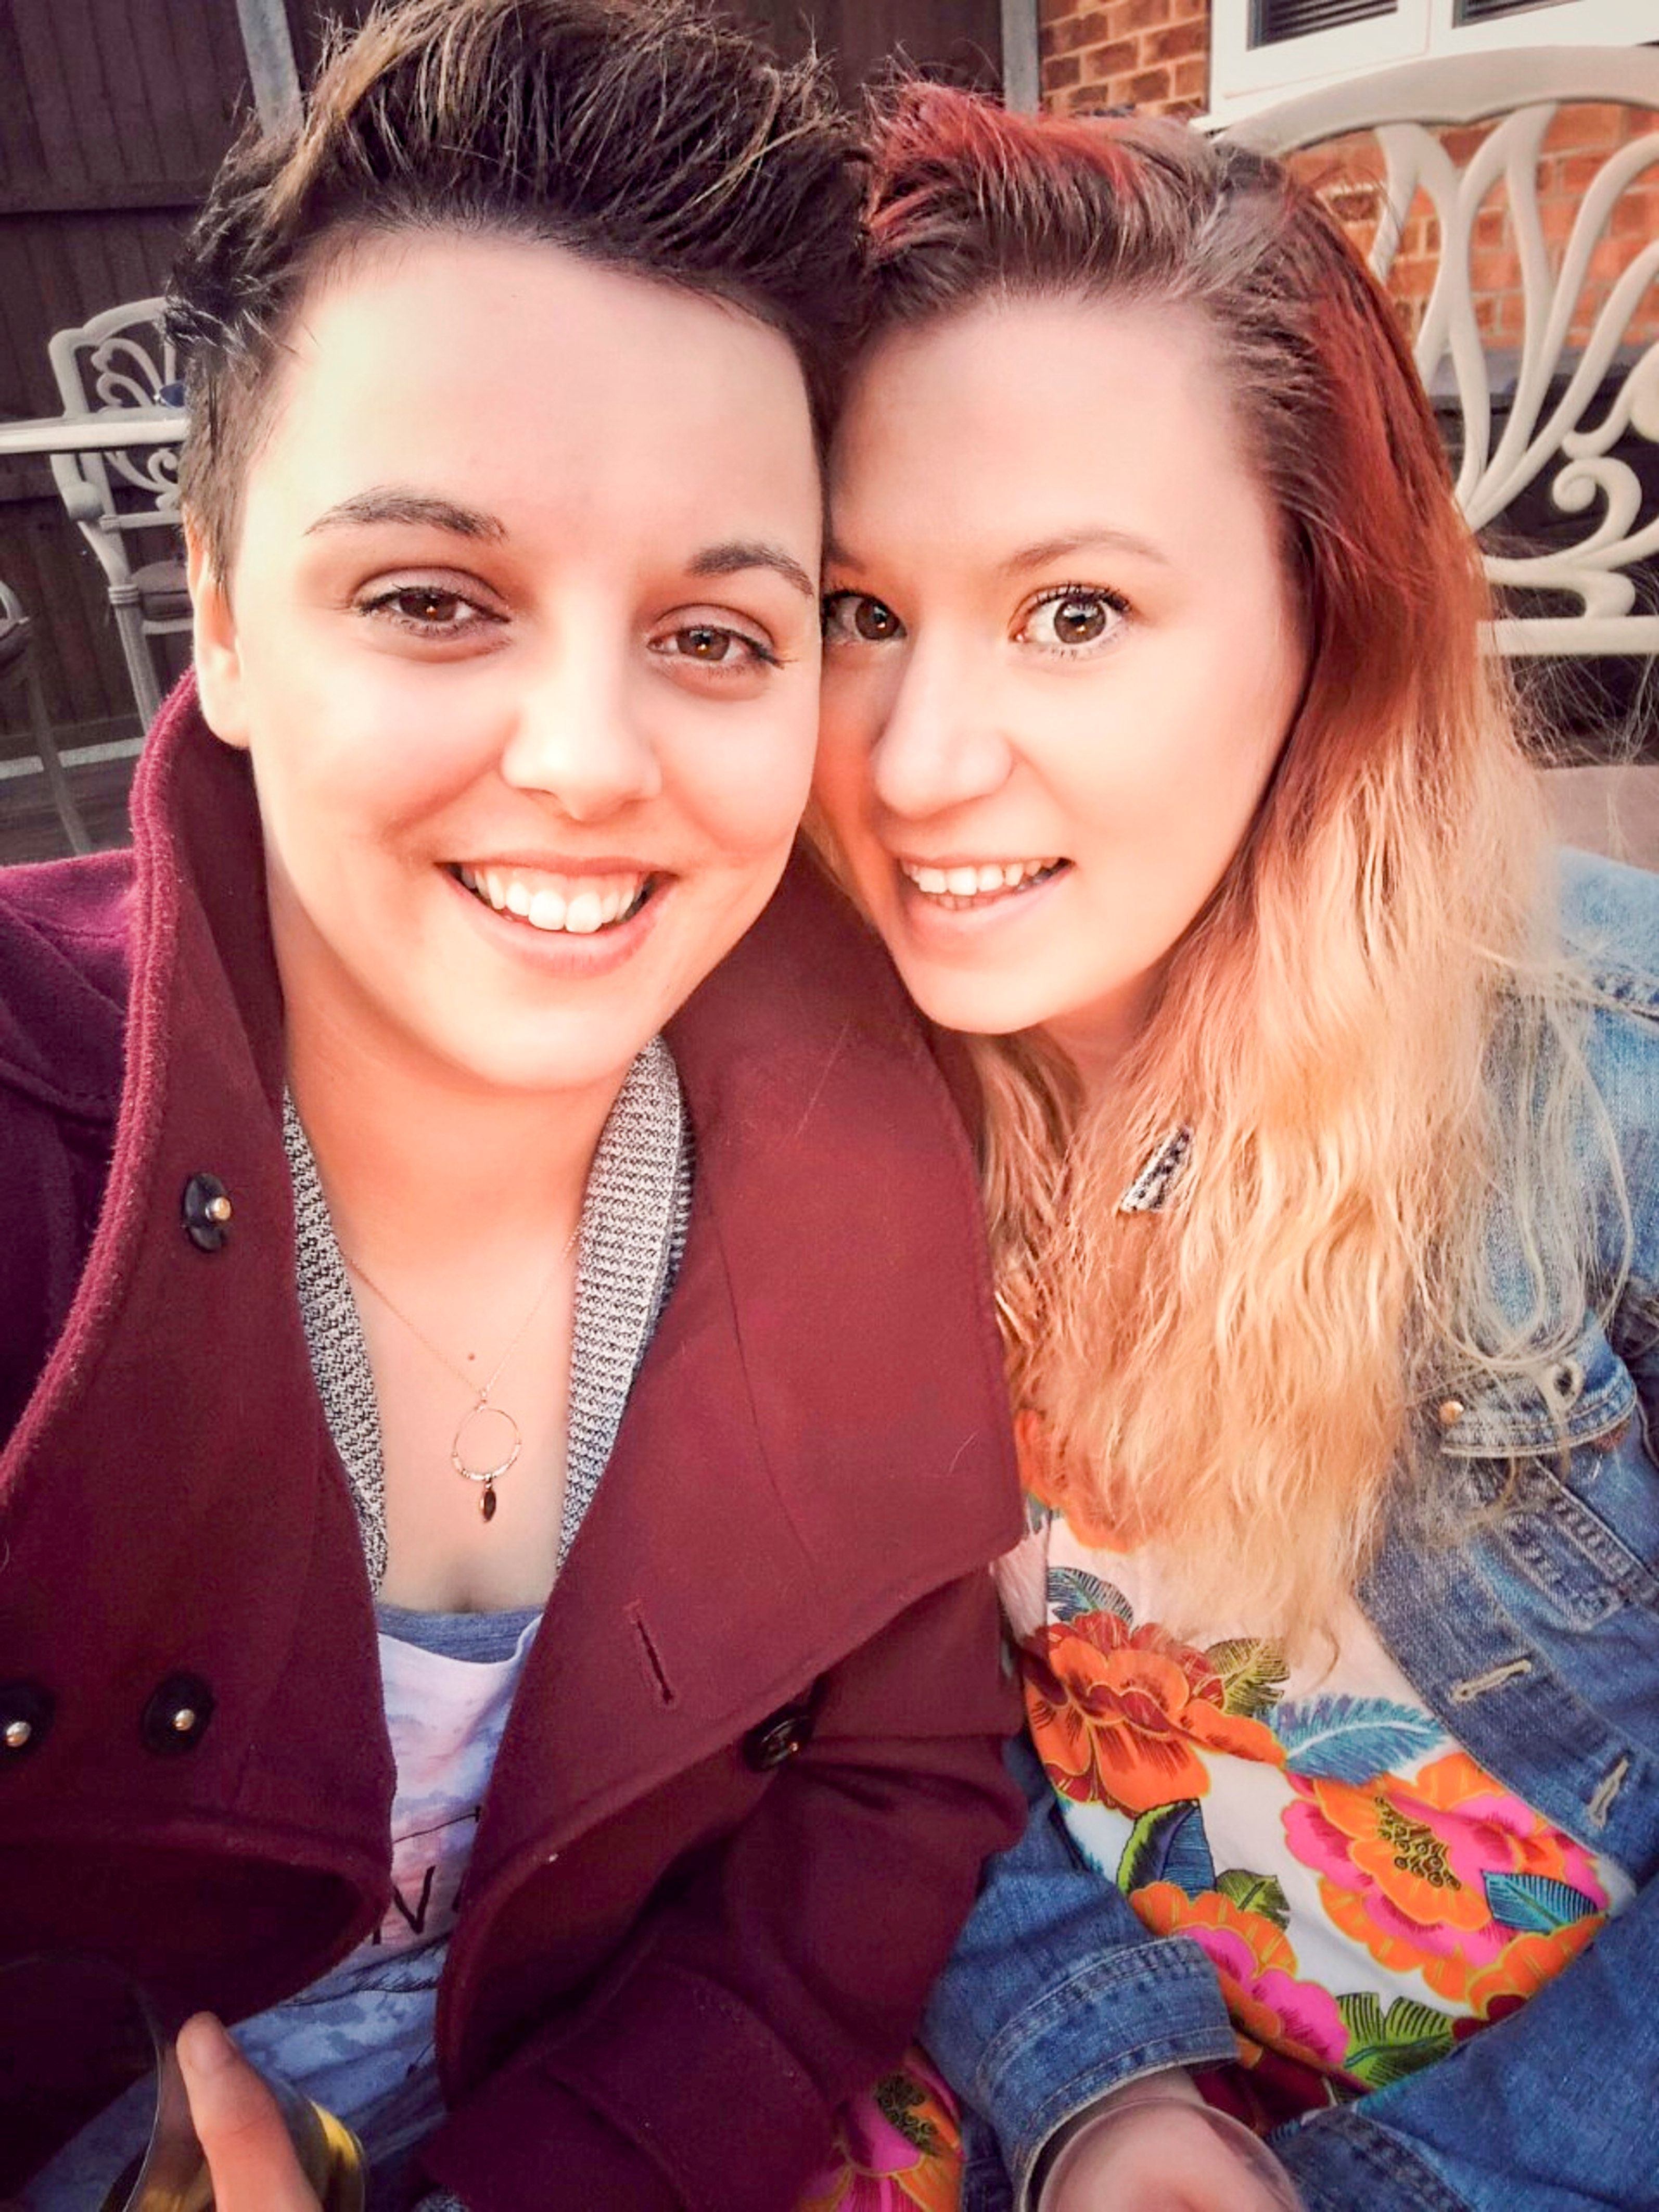 Lesbian Couple Claim TUI Made Last-Minute Changes To Dream Wedding 'Because They Are